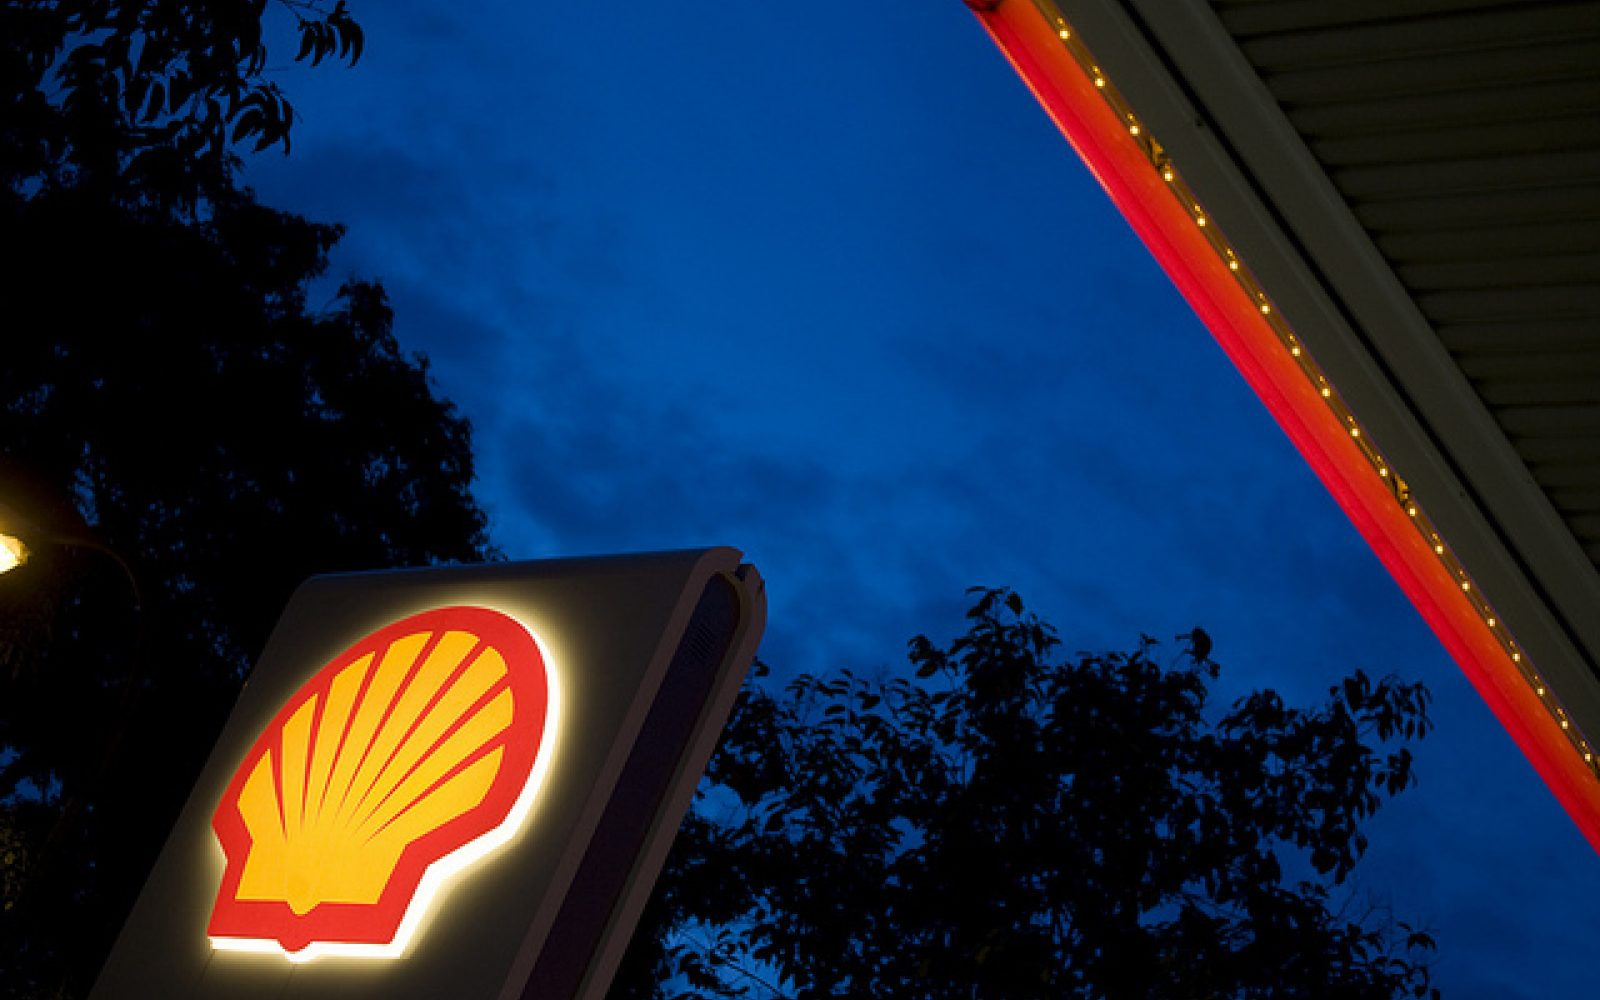 The agreement will allow Pozitive to grow, giving it access to wholesale trading markets. Image: Shell